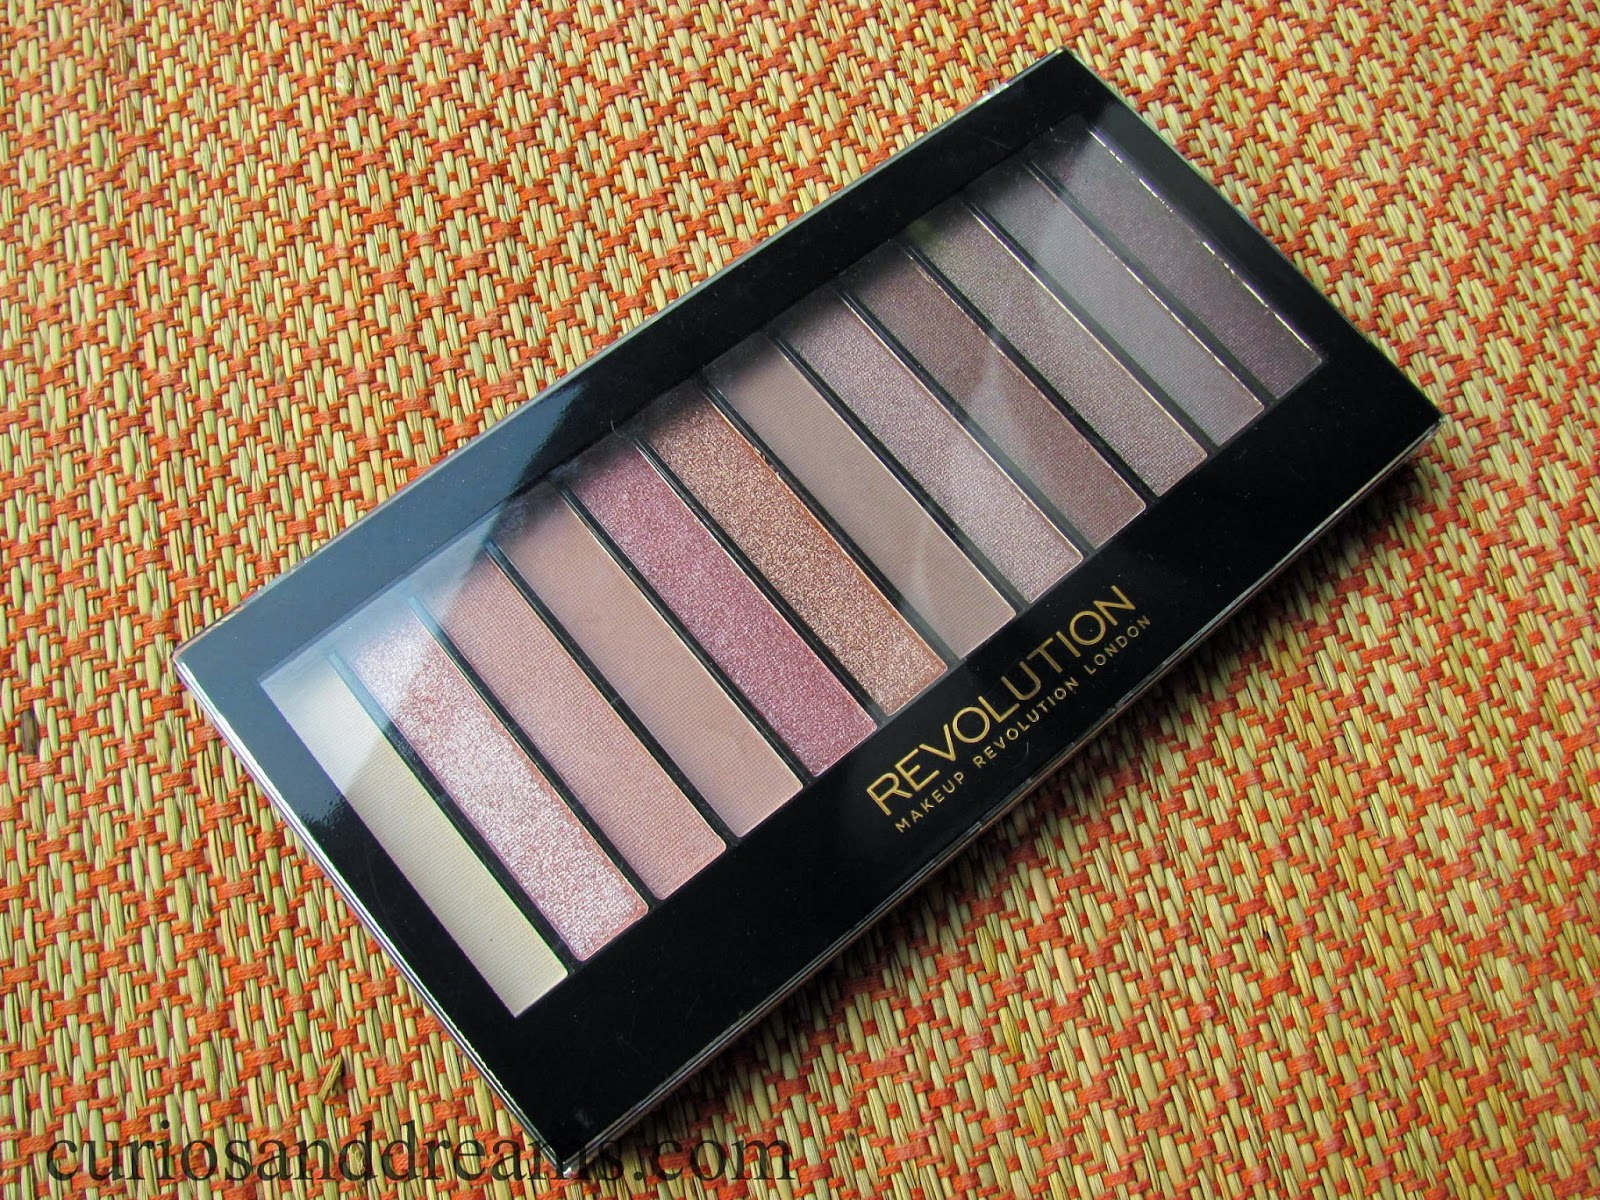 Makeup Revolution Iconic 3 palette review, Makeup Revolution Iconic 3 Redemption Eyeshadow Palette review